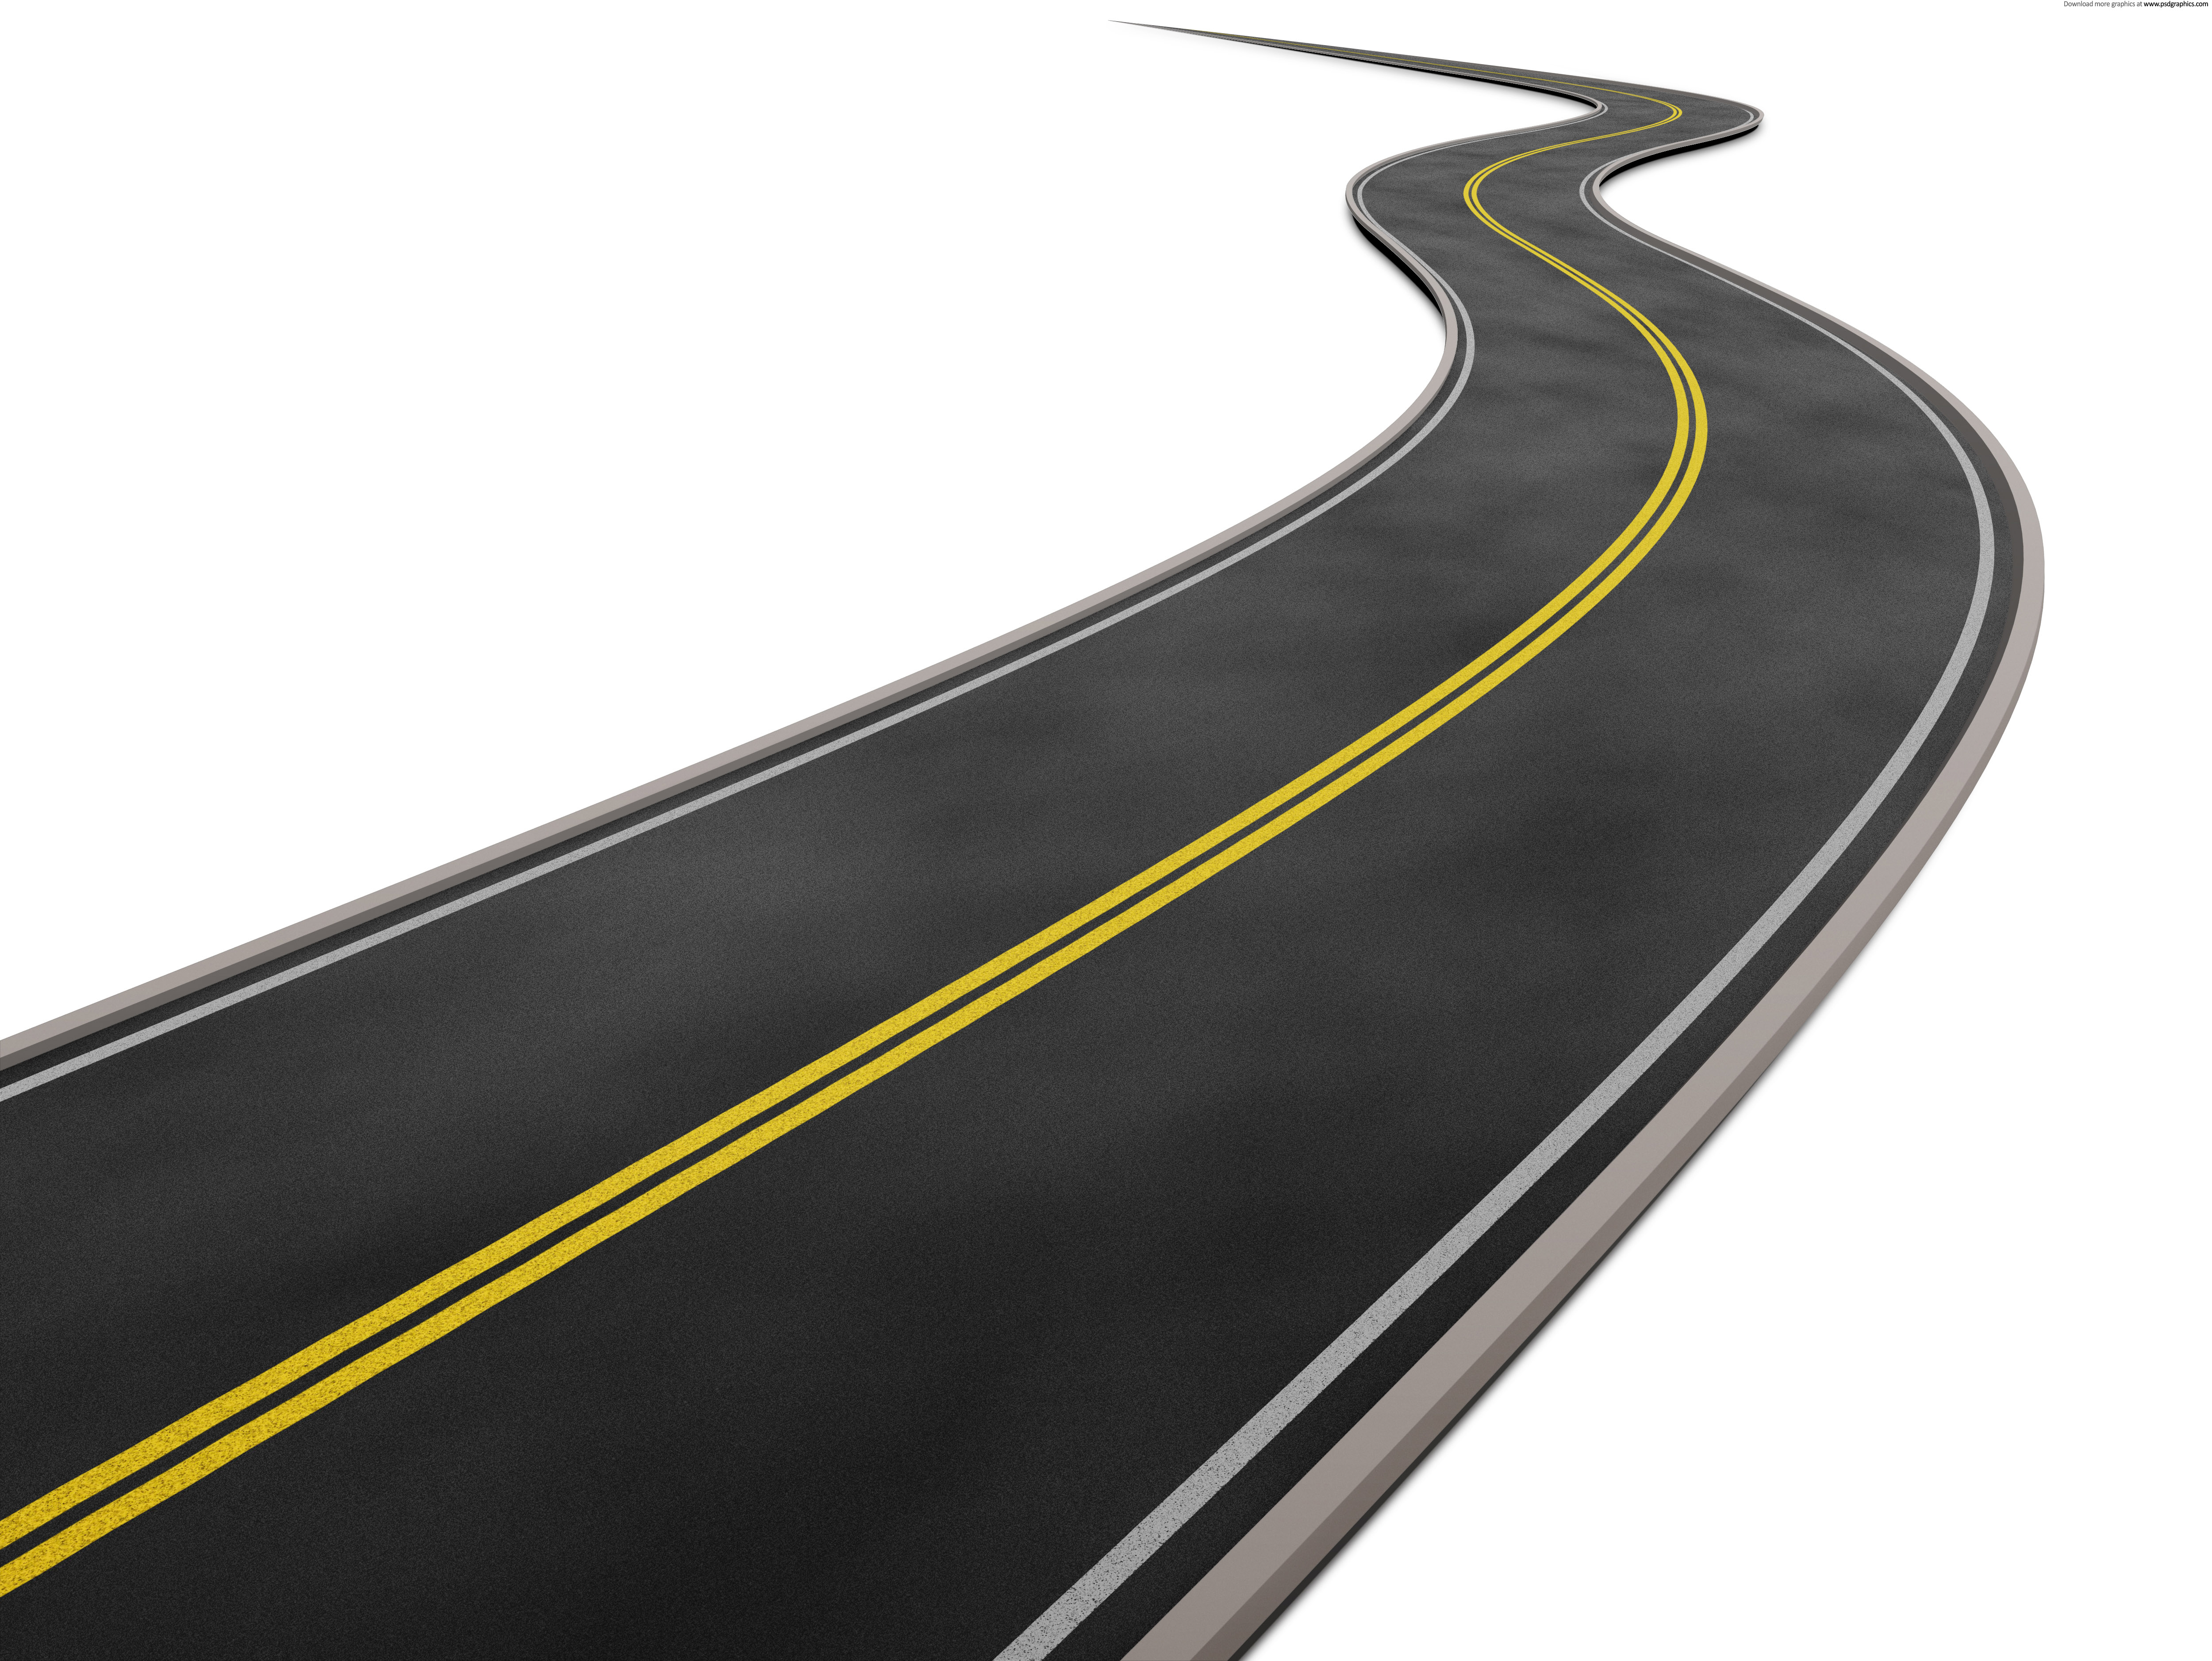 Free Curved Road Png, Download Free Clip Art, Free Clip Art.